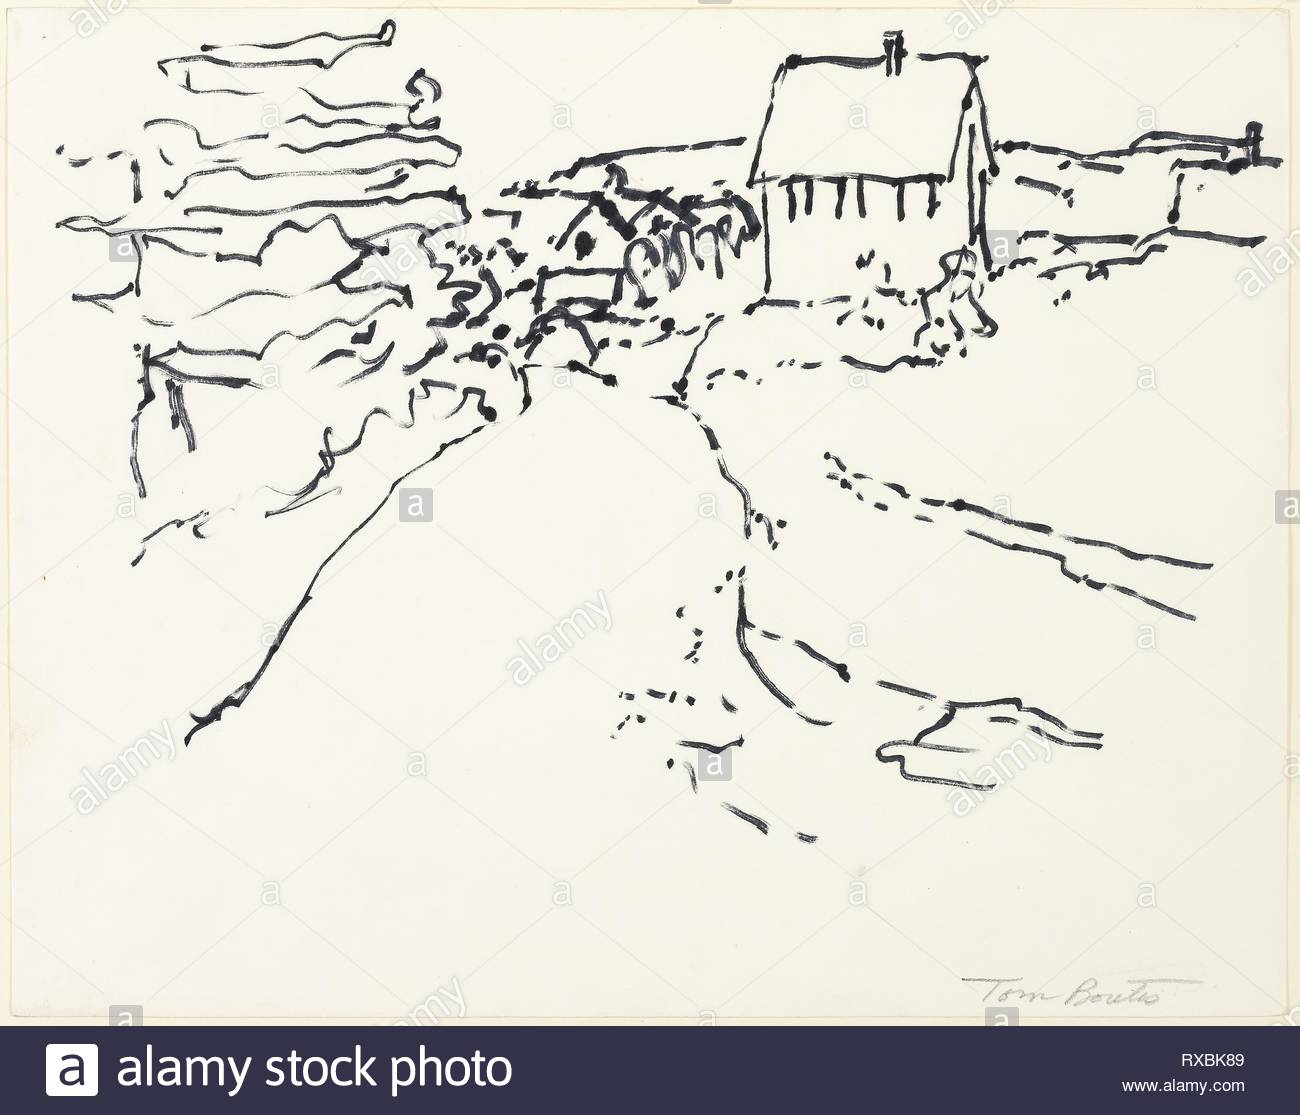 Cottage by the Sea. Tom Boutis; American, born 1922. Date: 1966-1967. Dimensions: 240 x 304 mm. Black fiber-tipped pen on white wove paper. Origin: United States. Museum: The Chicago Art Institute. - Stock Image